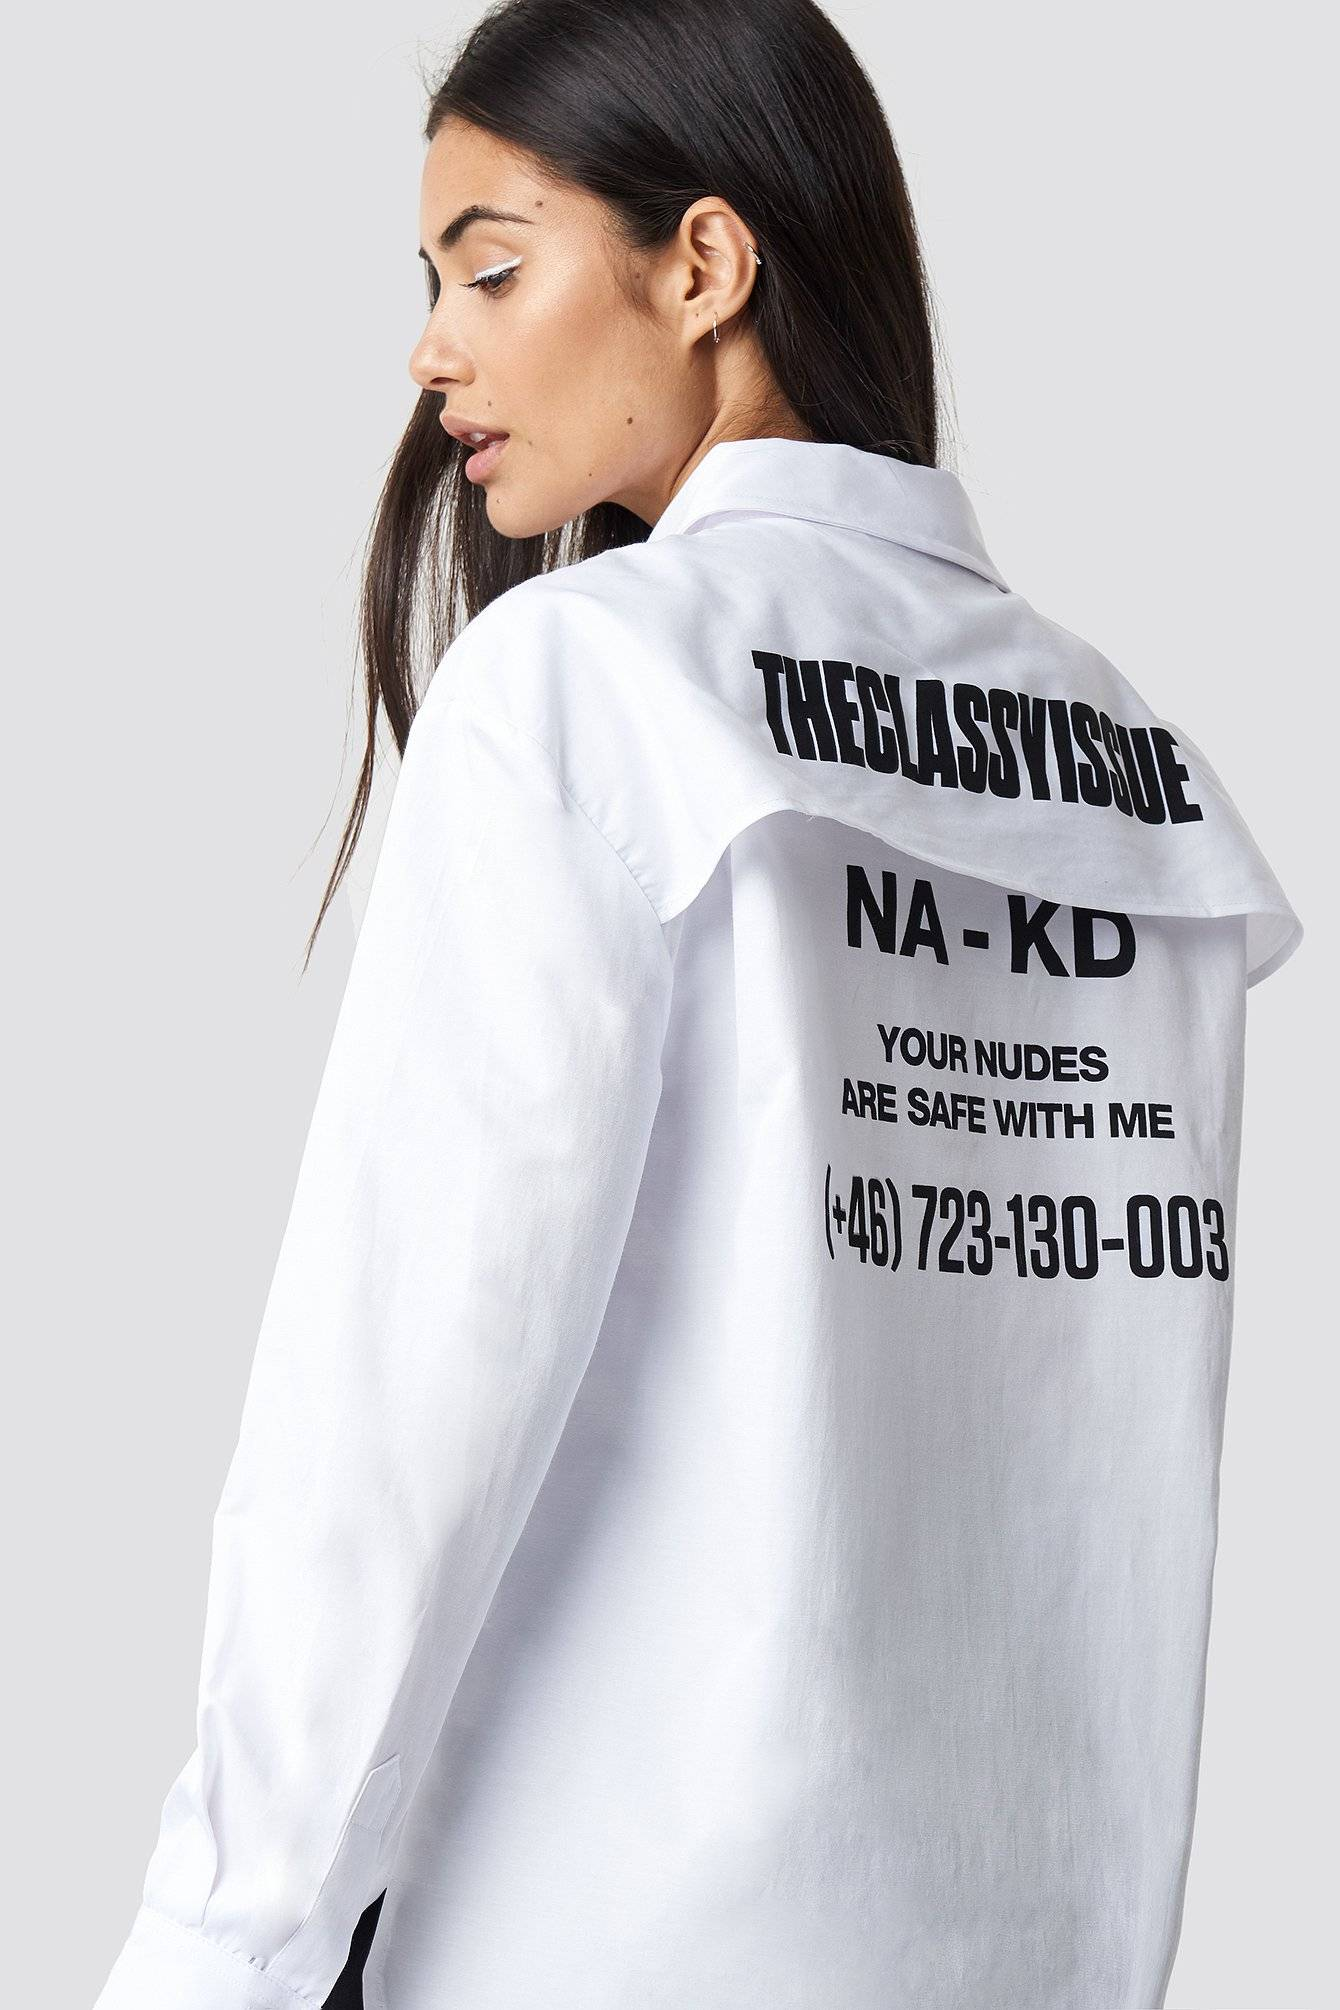 The Classy Issue x NA-KD The Classy Safety Shirt - White